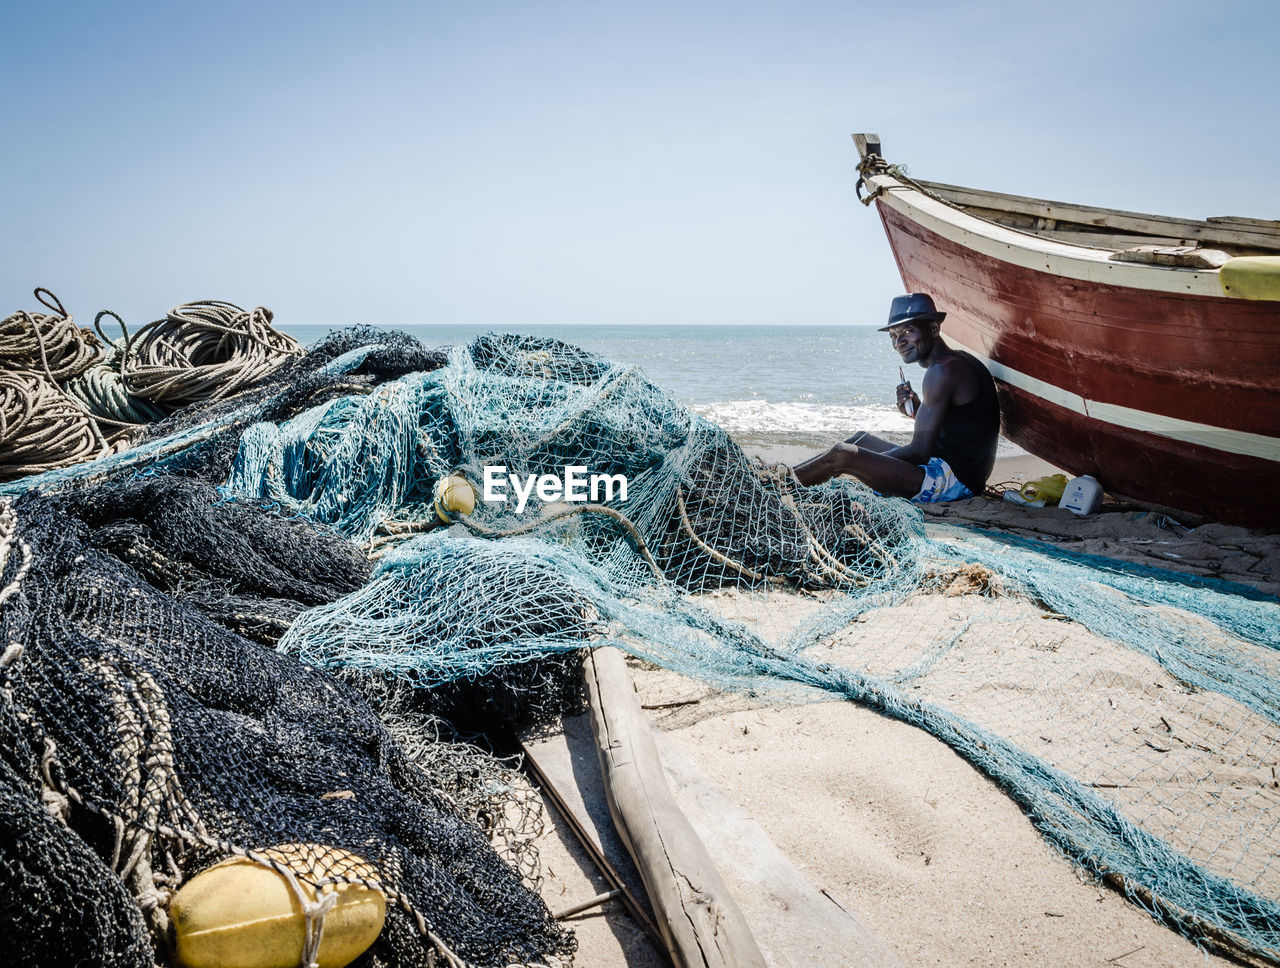 nautical vessel, water, mode of transportation, sea, transportation, fishing net, sky, fishing industry, rope, nature, commercial fishing net, fishing, day, beach, moored, clear sky, no people, horizon, land, outdoors, horizon over water, fishing boat